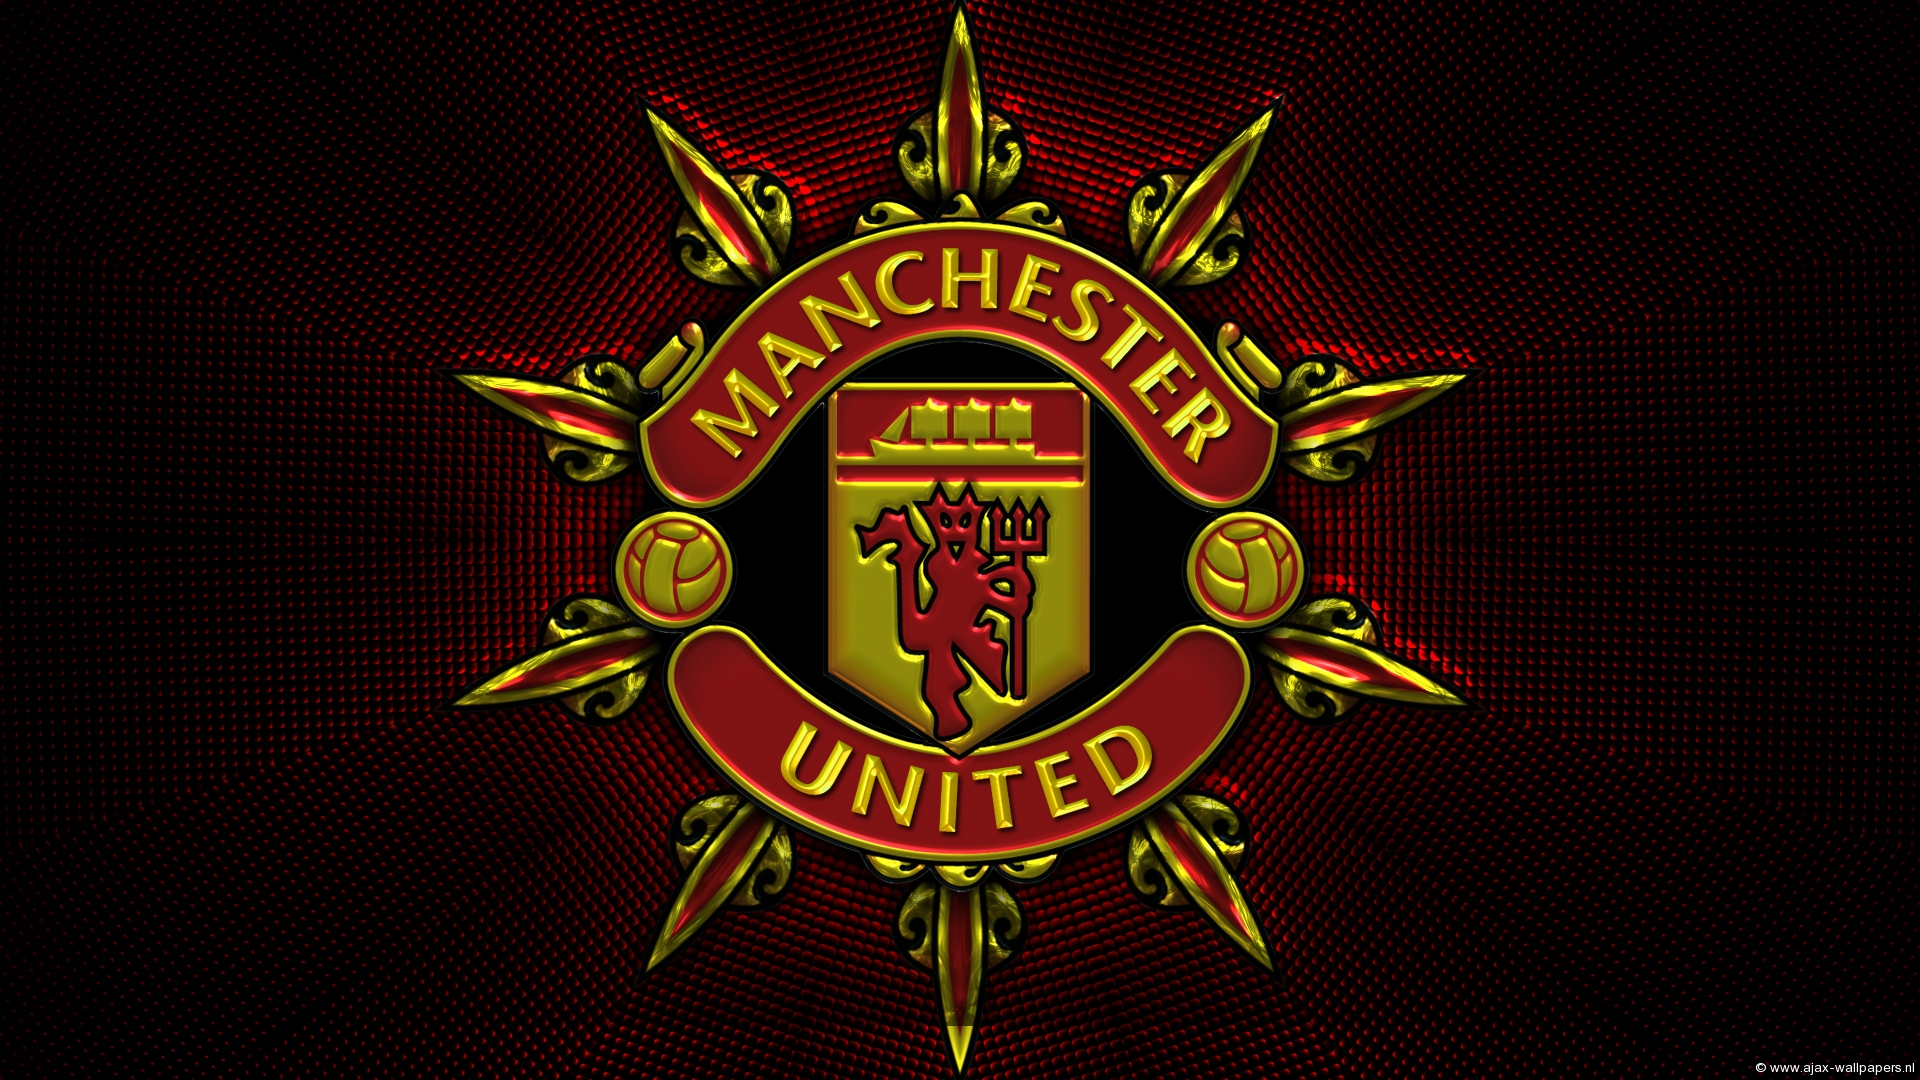 Man United: Manchester United Wallpapers 1920x1080